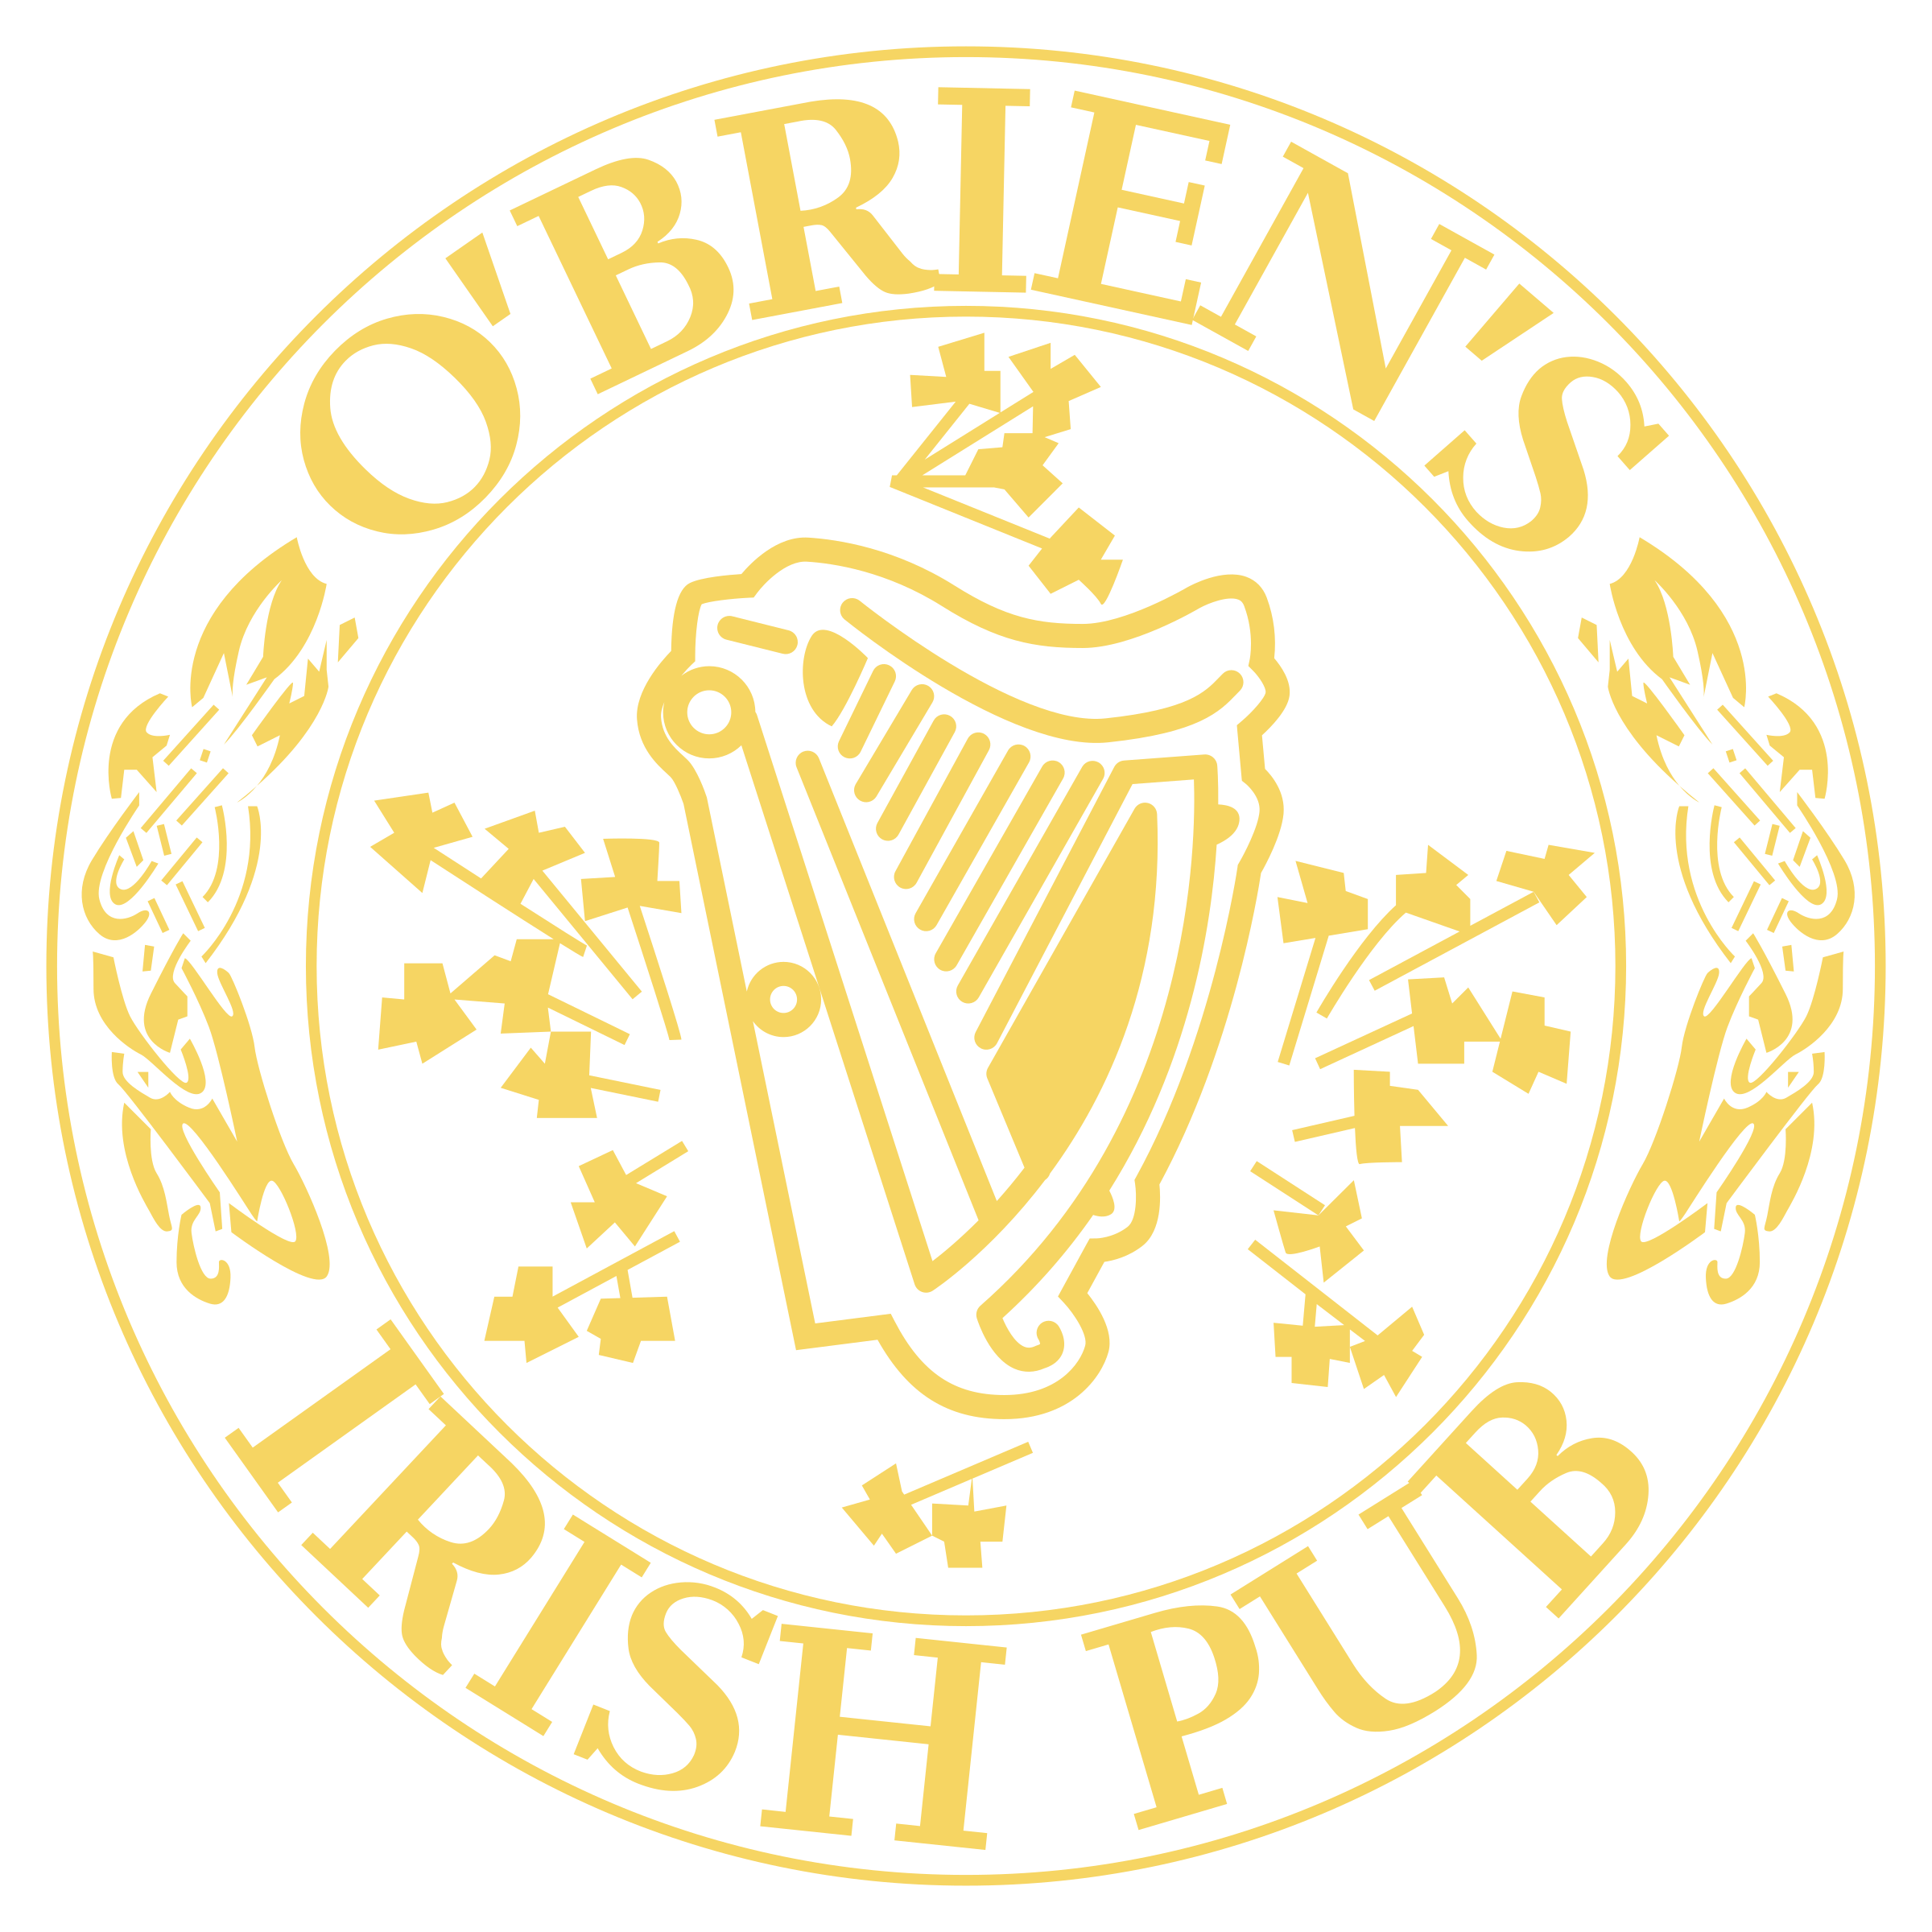 af6997c6056d7 O'Brien's Irish Pub Logo PNG Transparent & SVG Vector - Freebie Supply